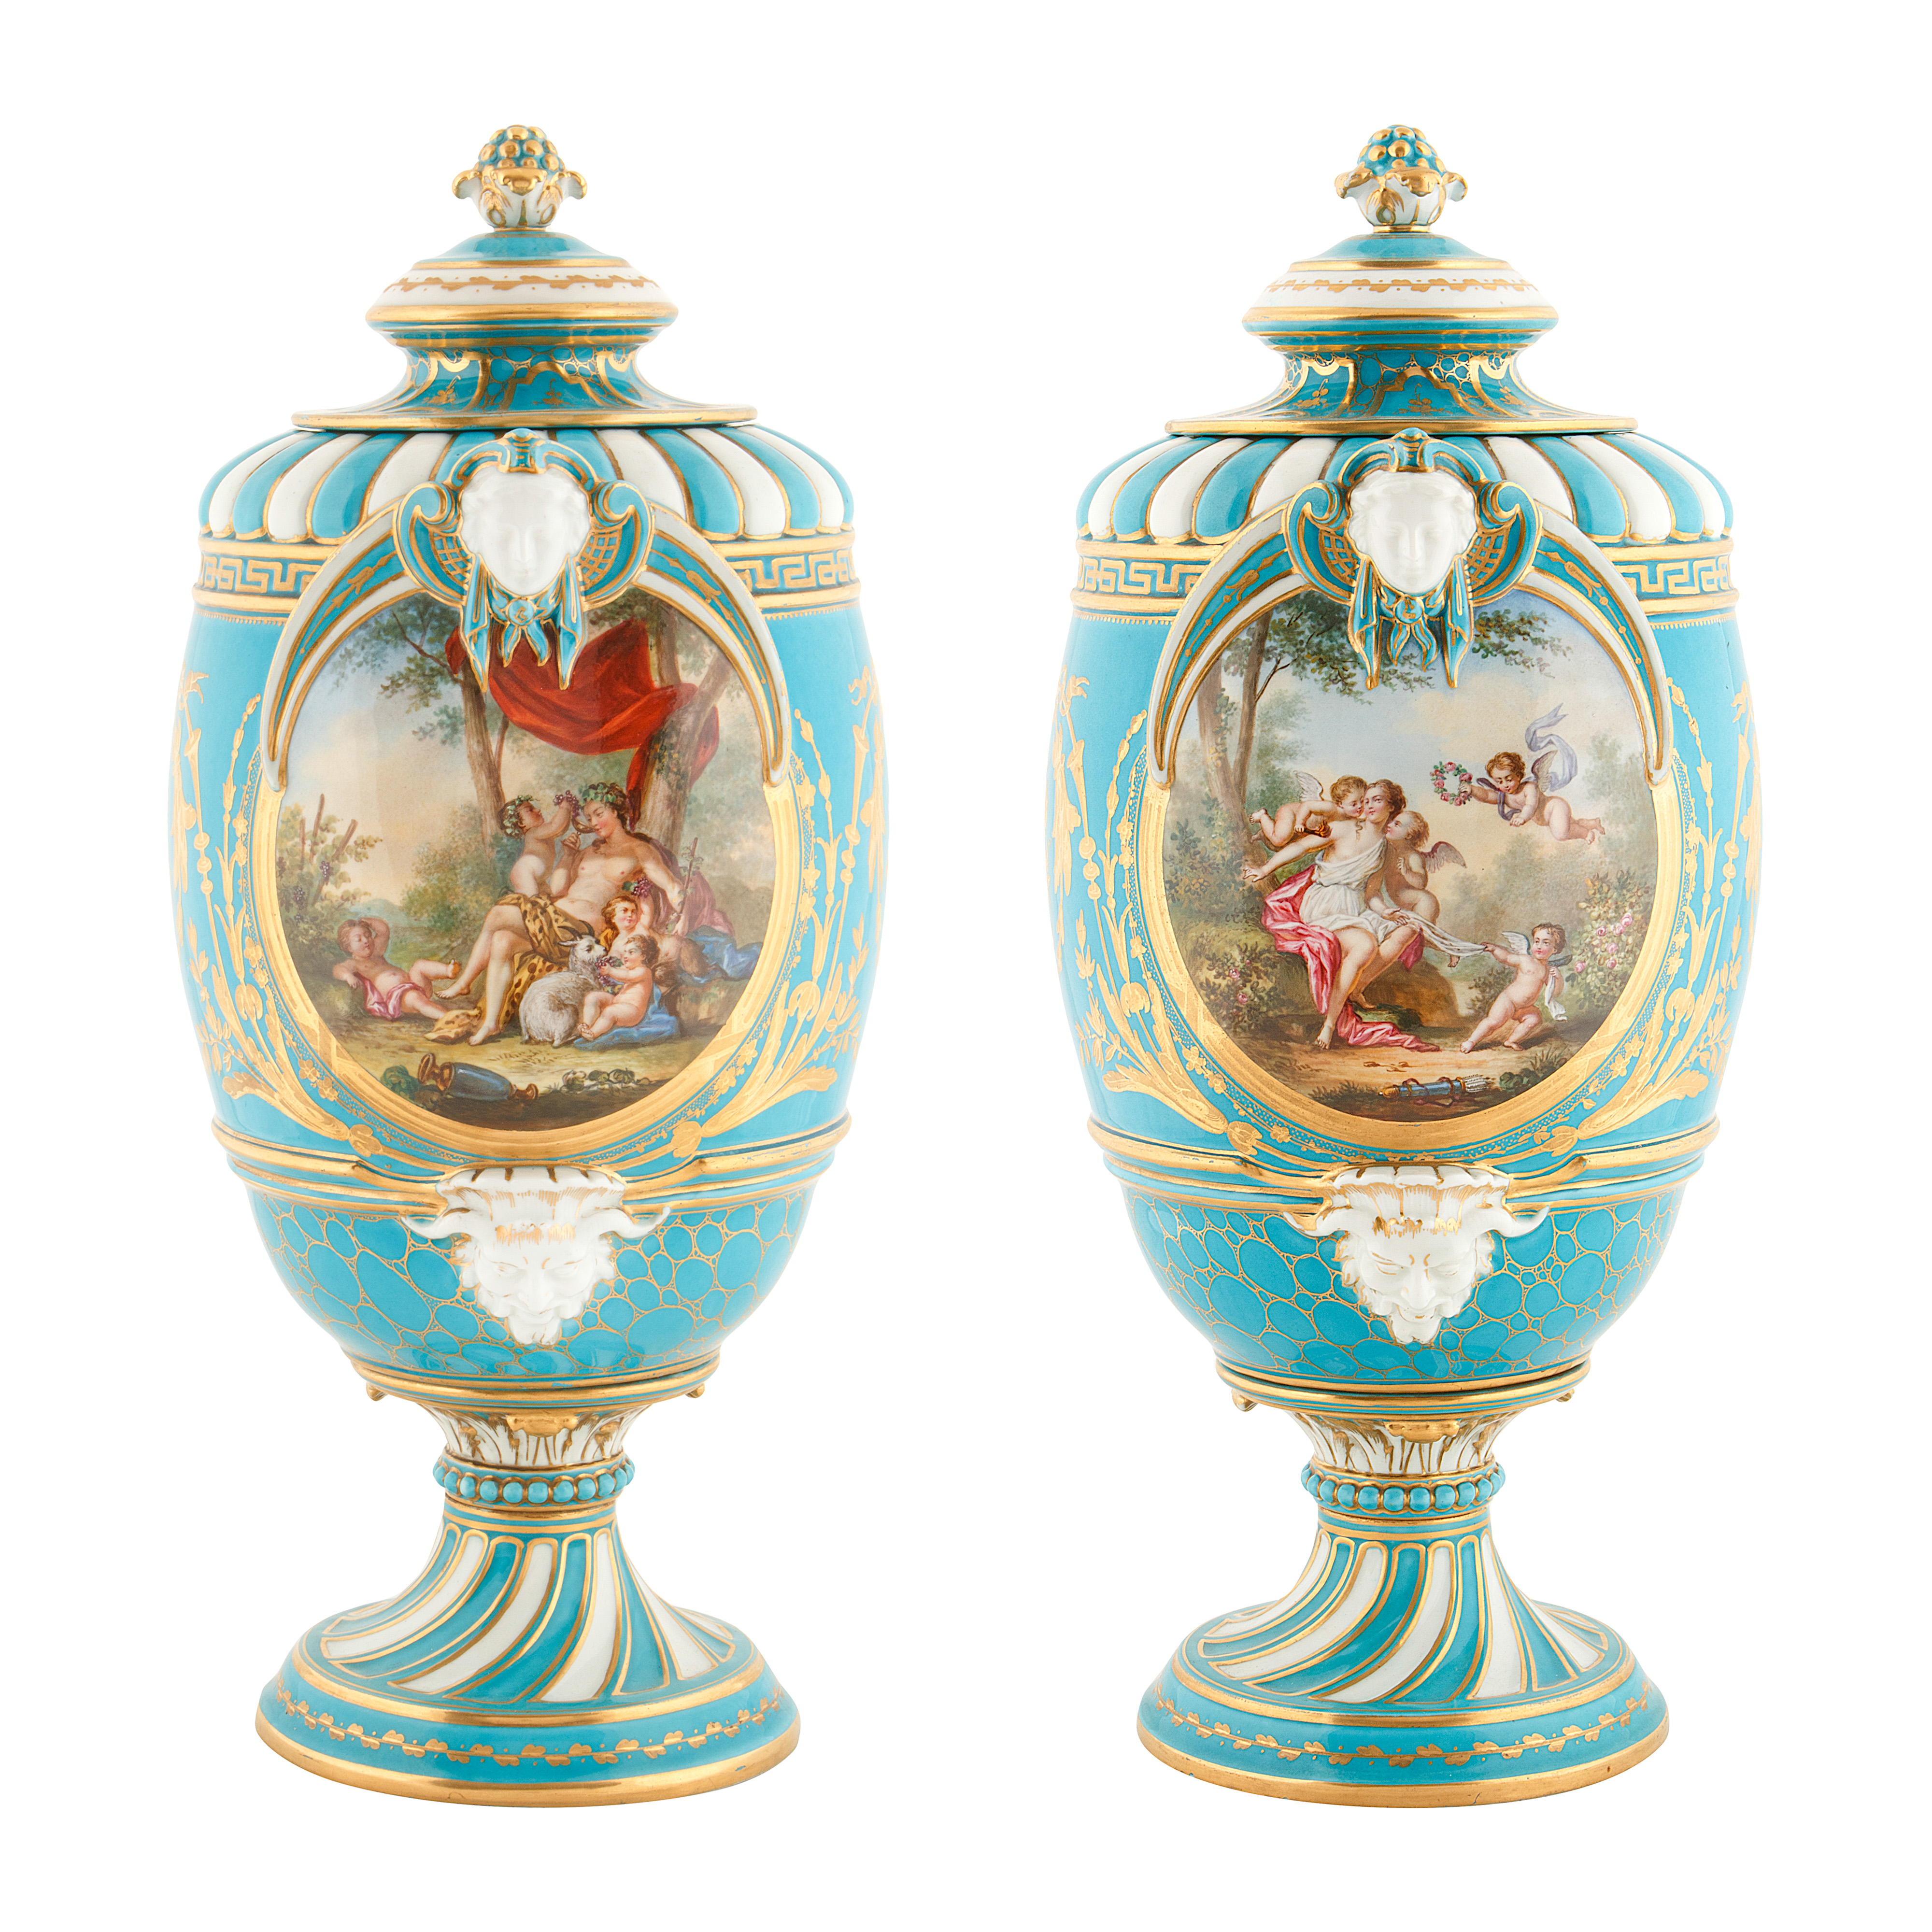 19TH CENTURY FRENCH SEVRE-STYLE PORCELAIN URNS